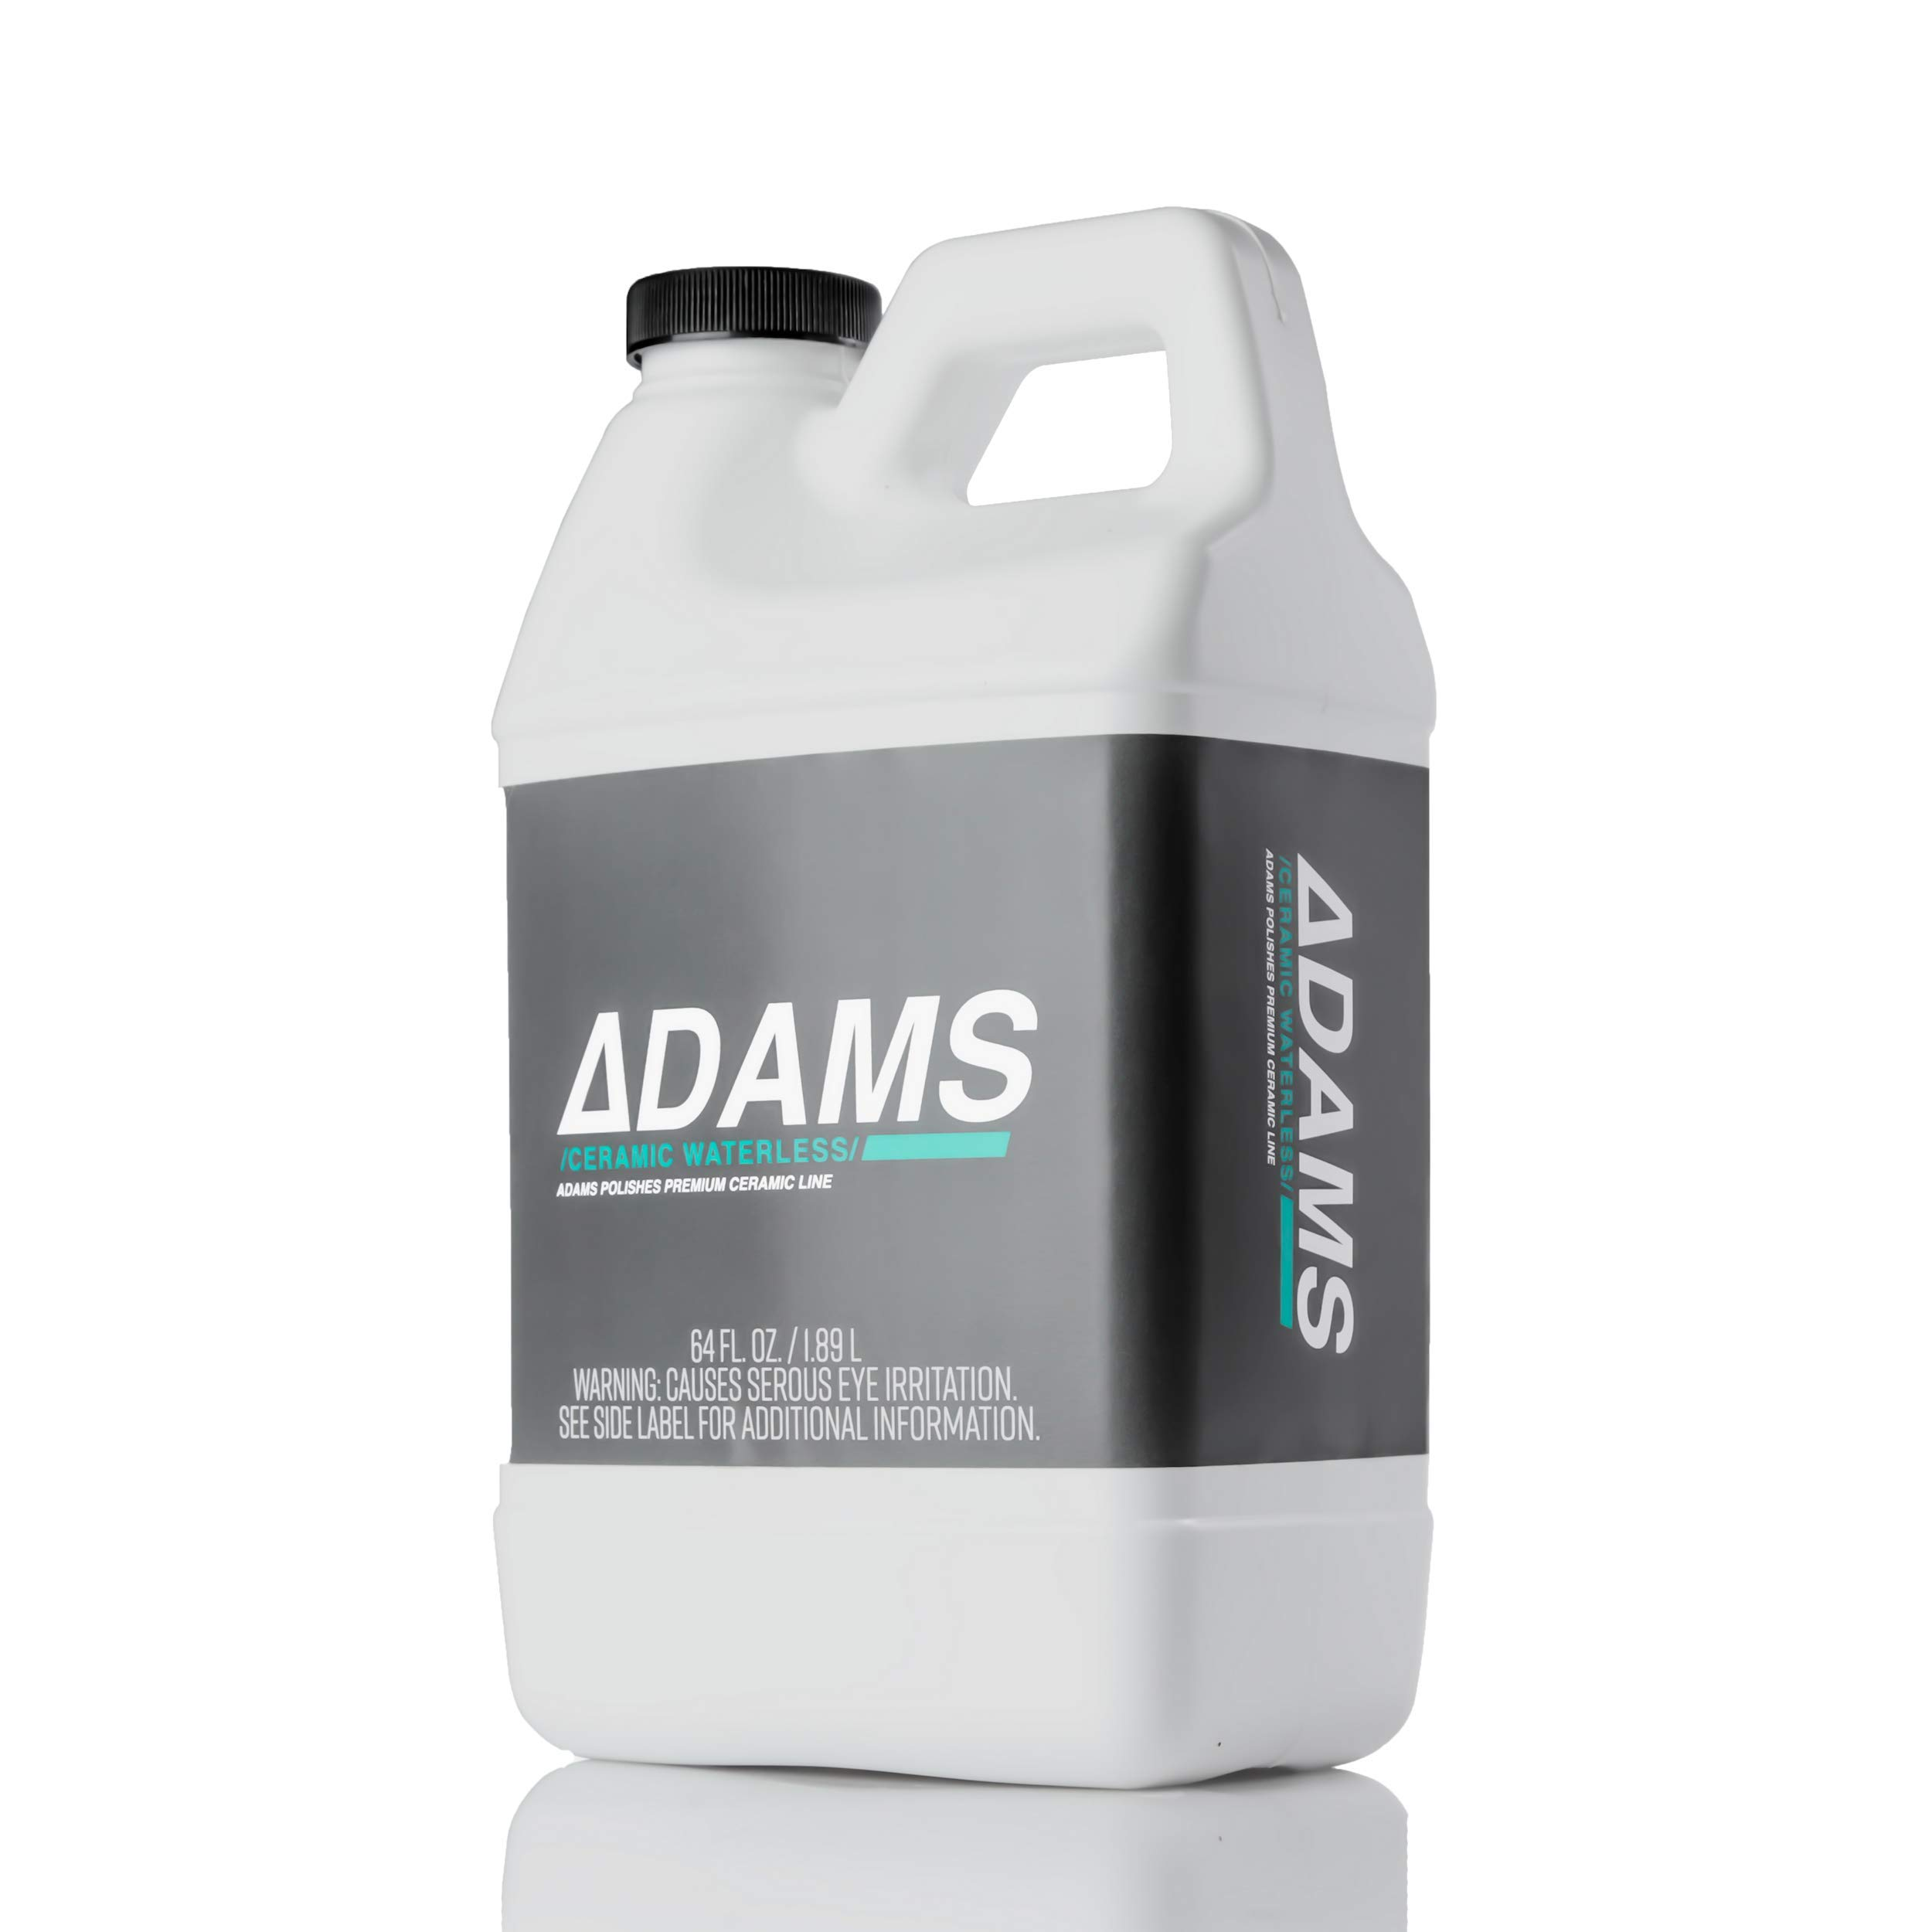 Adam's Ceramic Waterless Wash - Clean & Boost The Ceramic Nano Paint Protection of Boat, RV, Truck & Motorcycle - Hydrophobic Top Coat Cleaner & Sealant to Extend The Life of Ceramic Coatings (64 oz) by Adam's Polishes